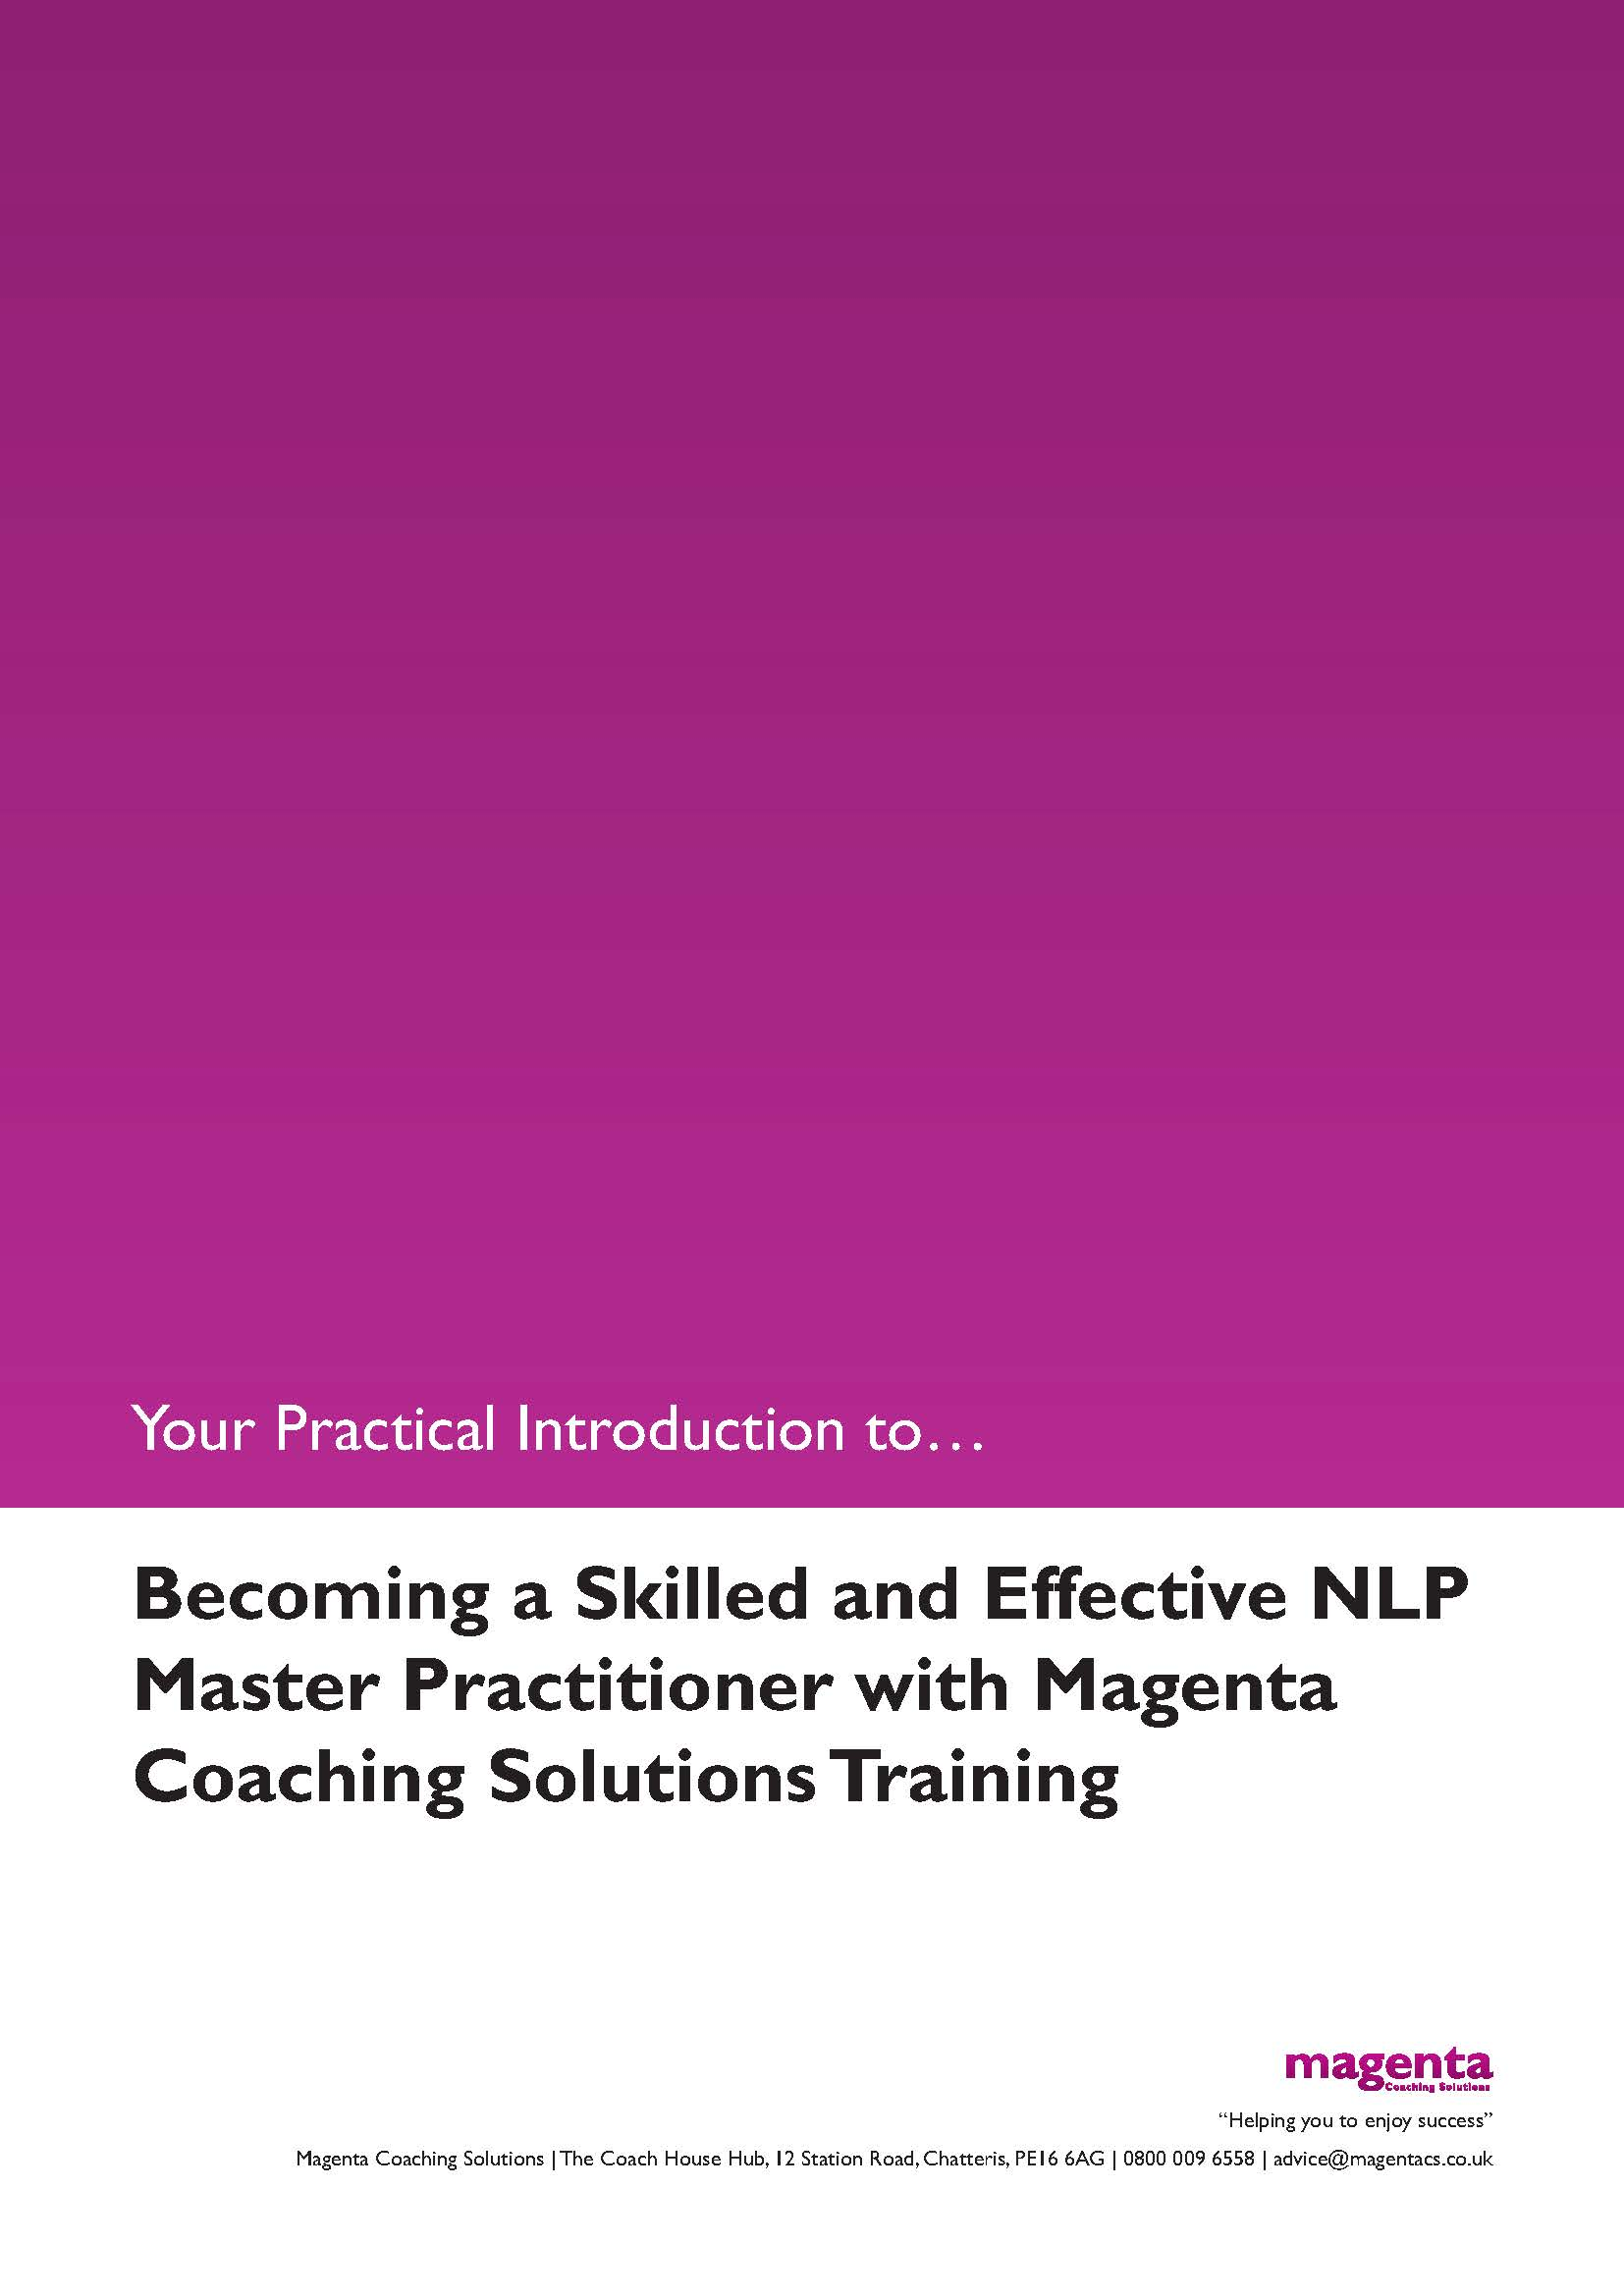 NLP Master Practitioner Guide.1